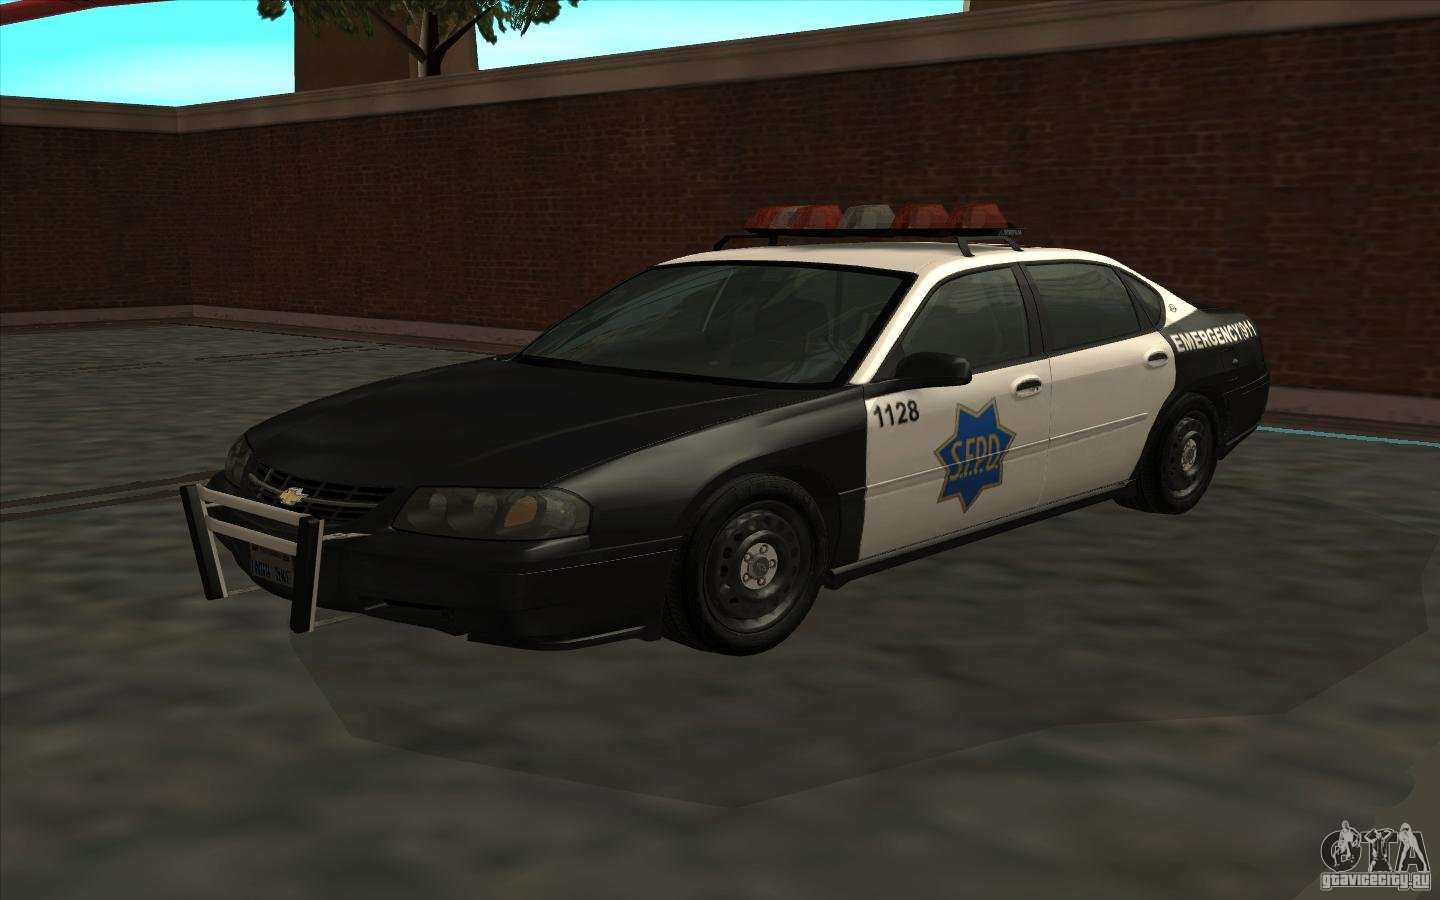 chevrolet impala 2003 sfpd for gta san andreas. Black Bedroom Furniture Sets. Home Design Ideas